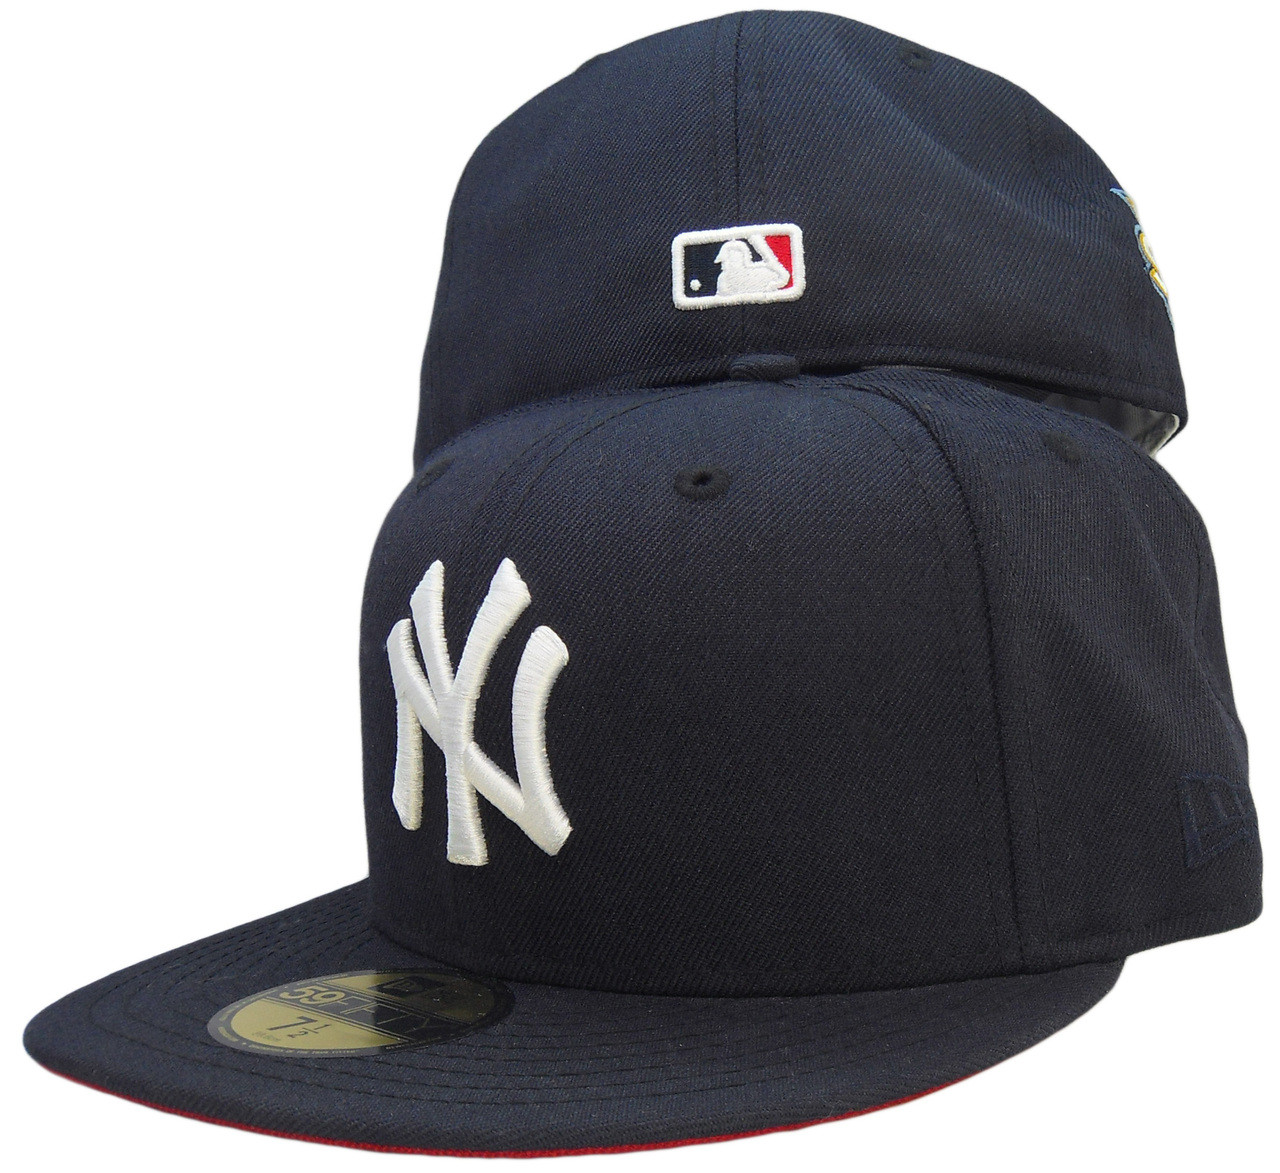 New York Yankees New Era 59Fifty Fitted Hat - Navy Blue fb84523d35b8